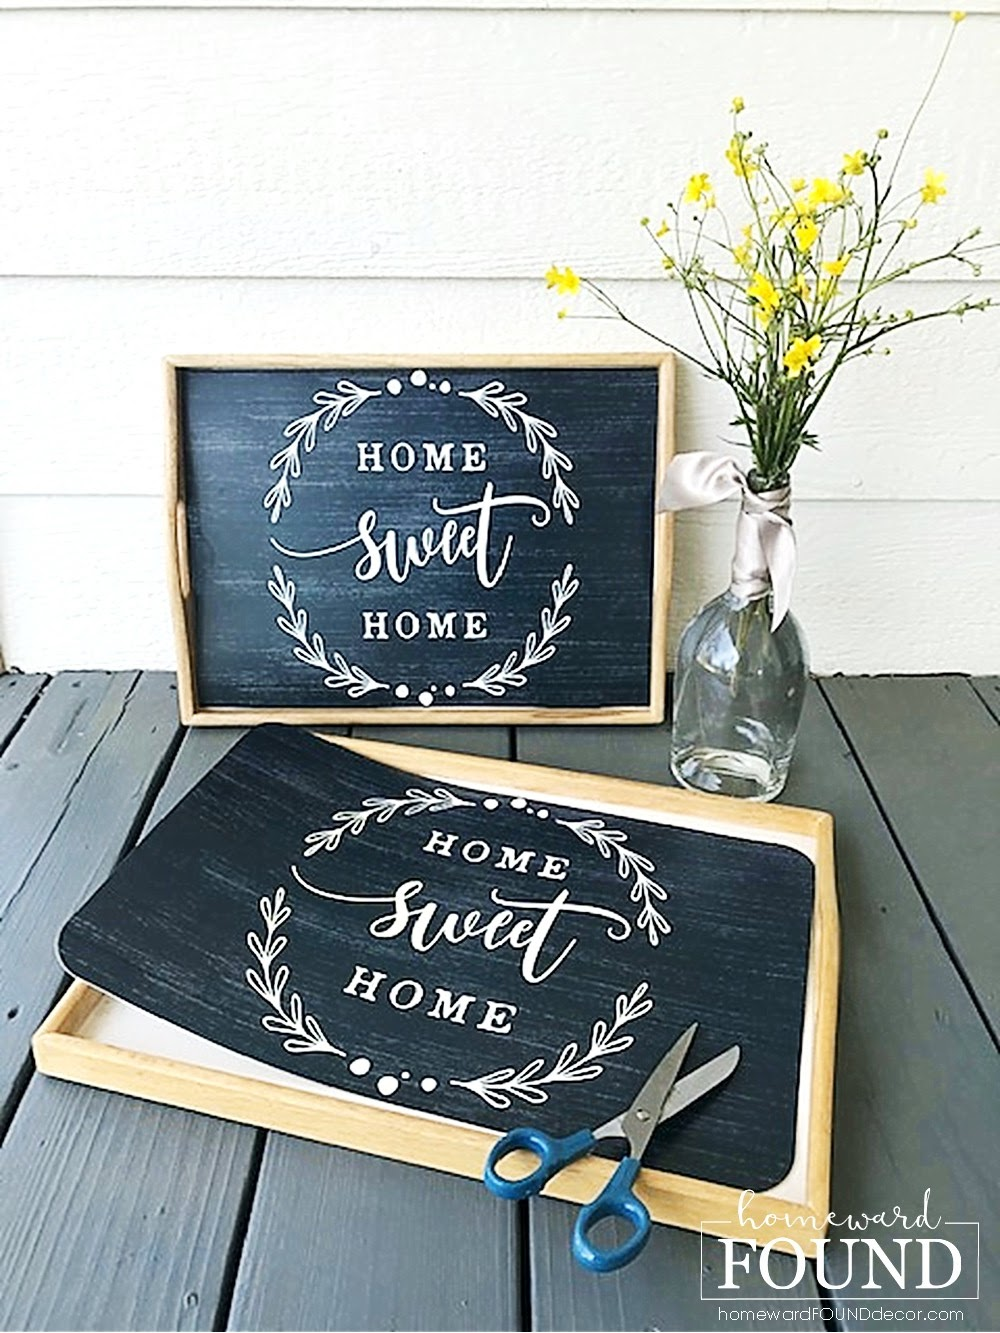 Kitchen tray DIY by Homeward Found, featured on DIY Salvaged Junk Projects 574 on Funky Junk!